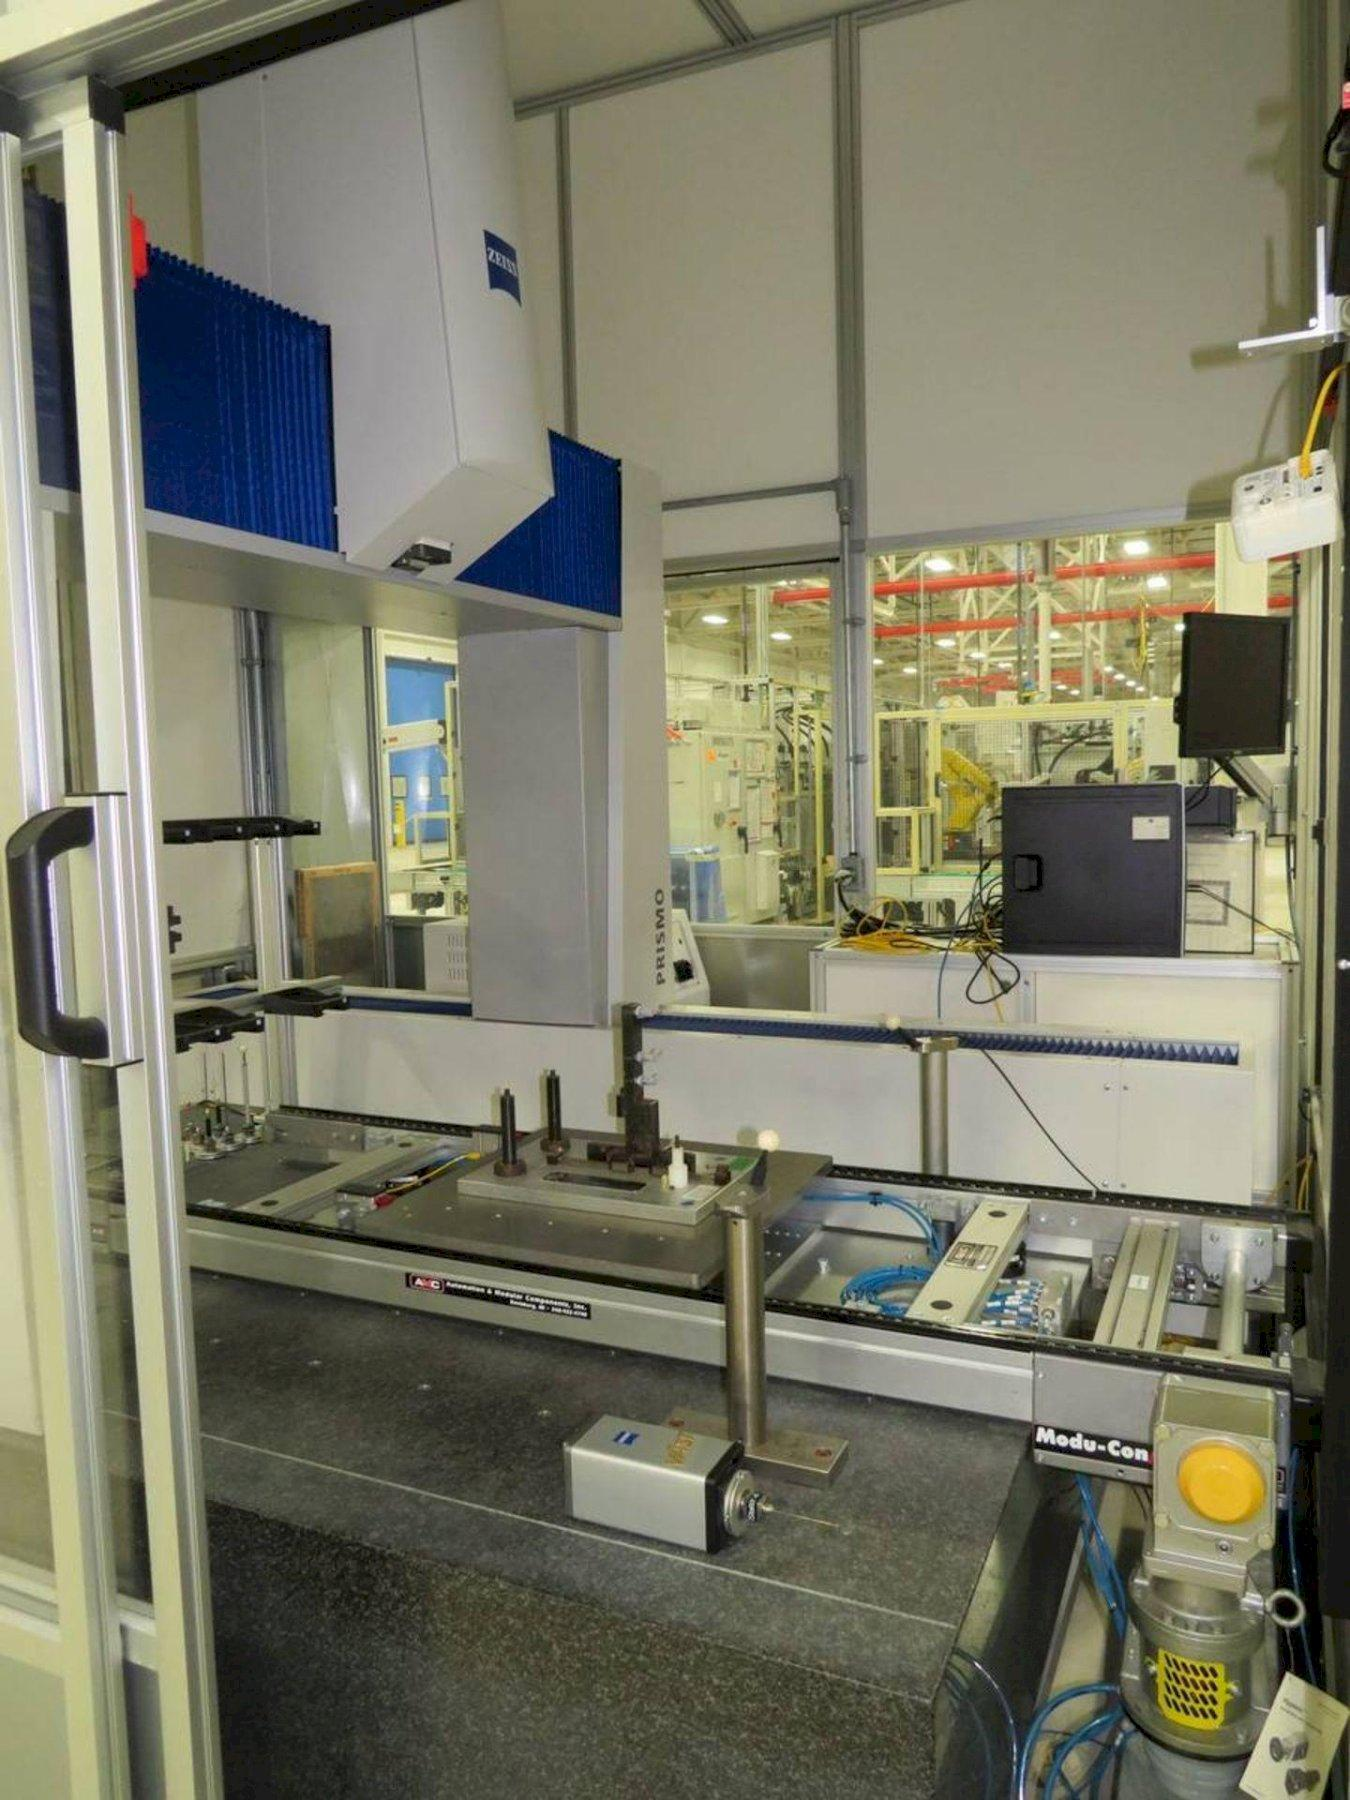 2011 Zeiss Accura Mass 12/18/10 DCC Coordinate Measuring Machine (CMM)